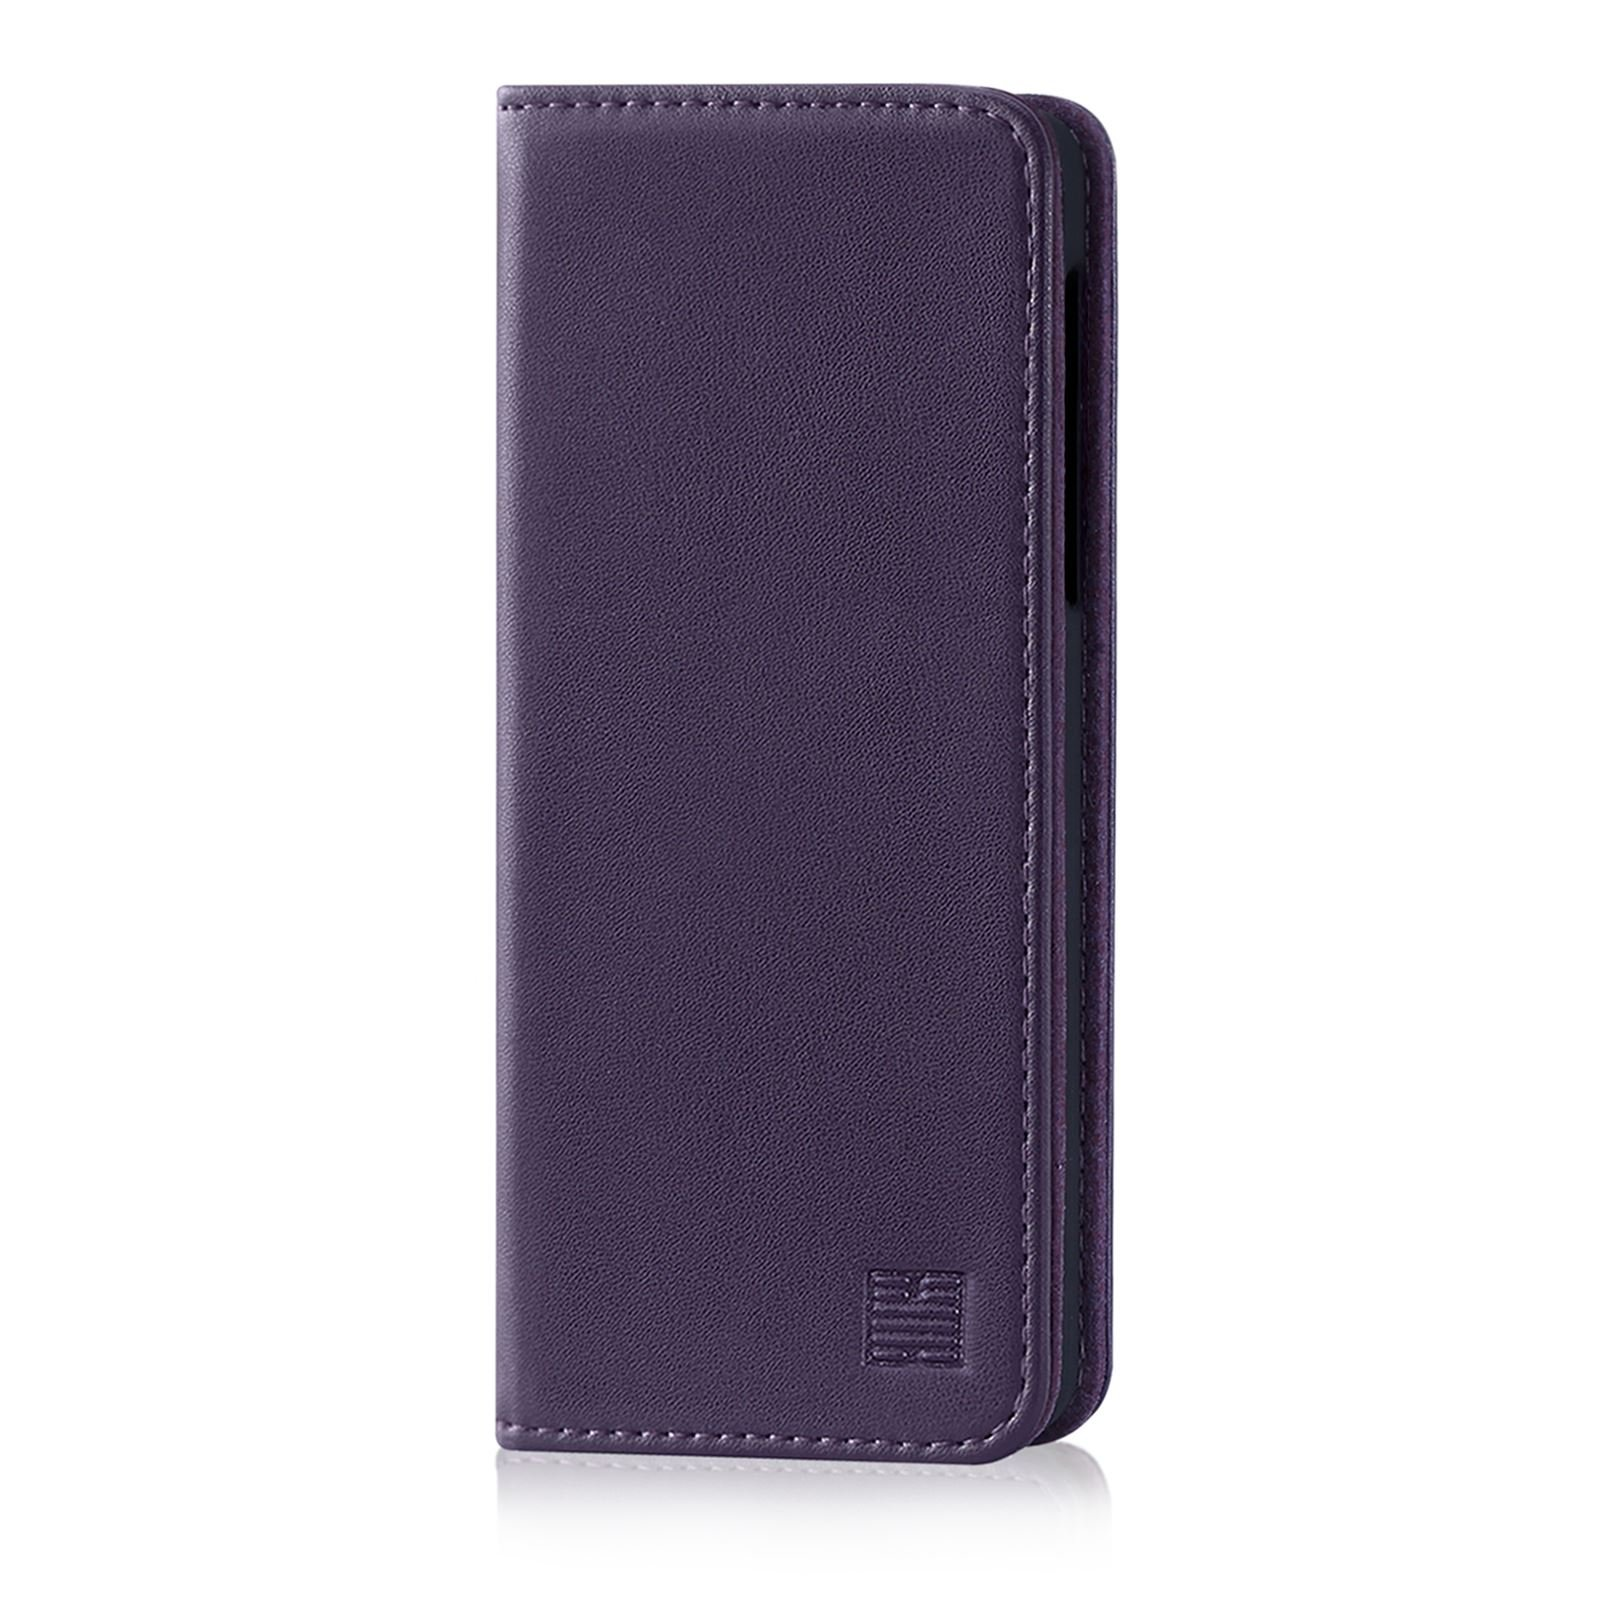 32nd Classic Series - Real Leather Book Wallet Case Cover for OnePlus 6, Real Leather Design with Card Slot, Magnetic Closure and Built in Stand - Aubergine